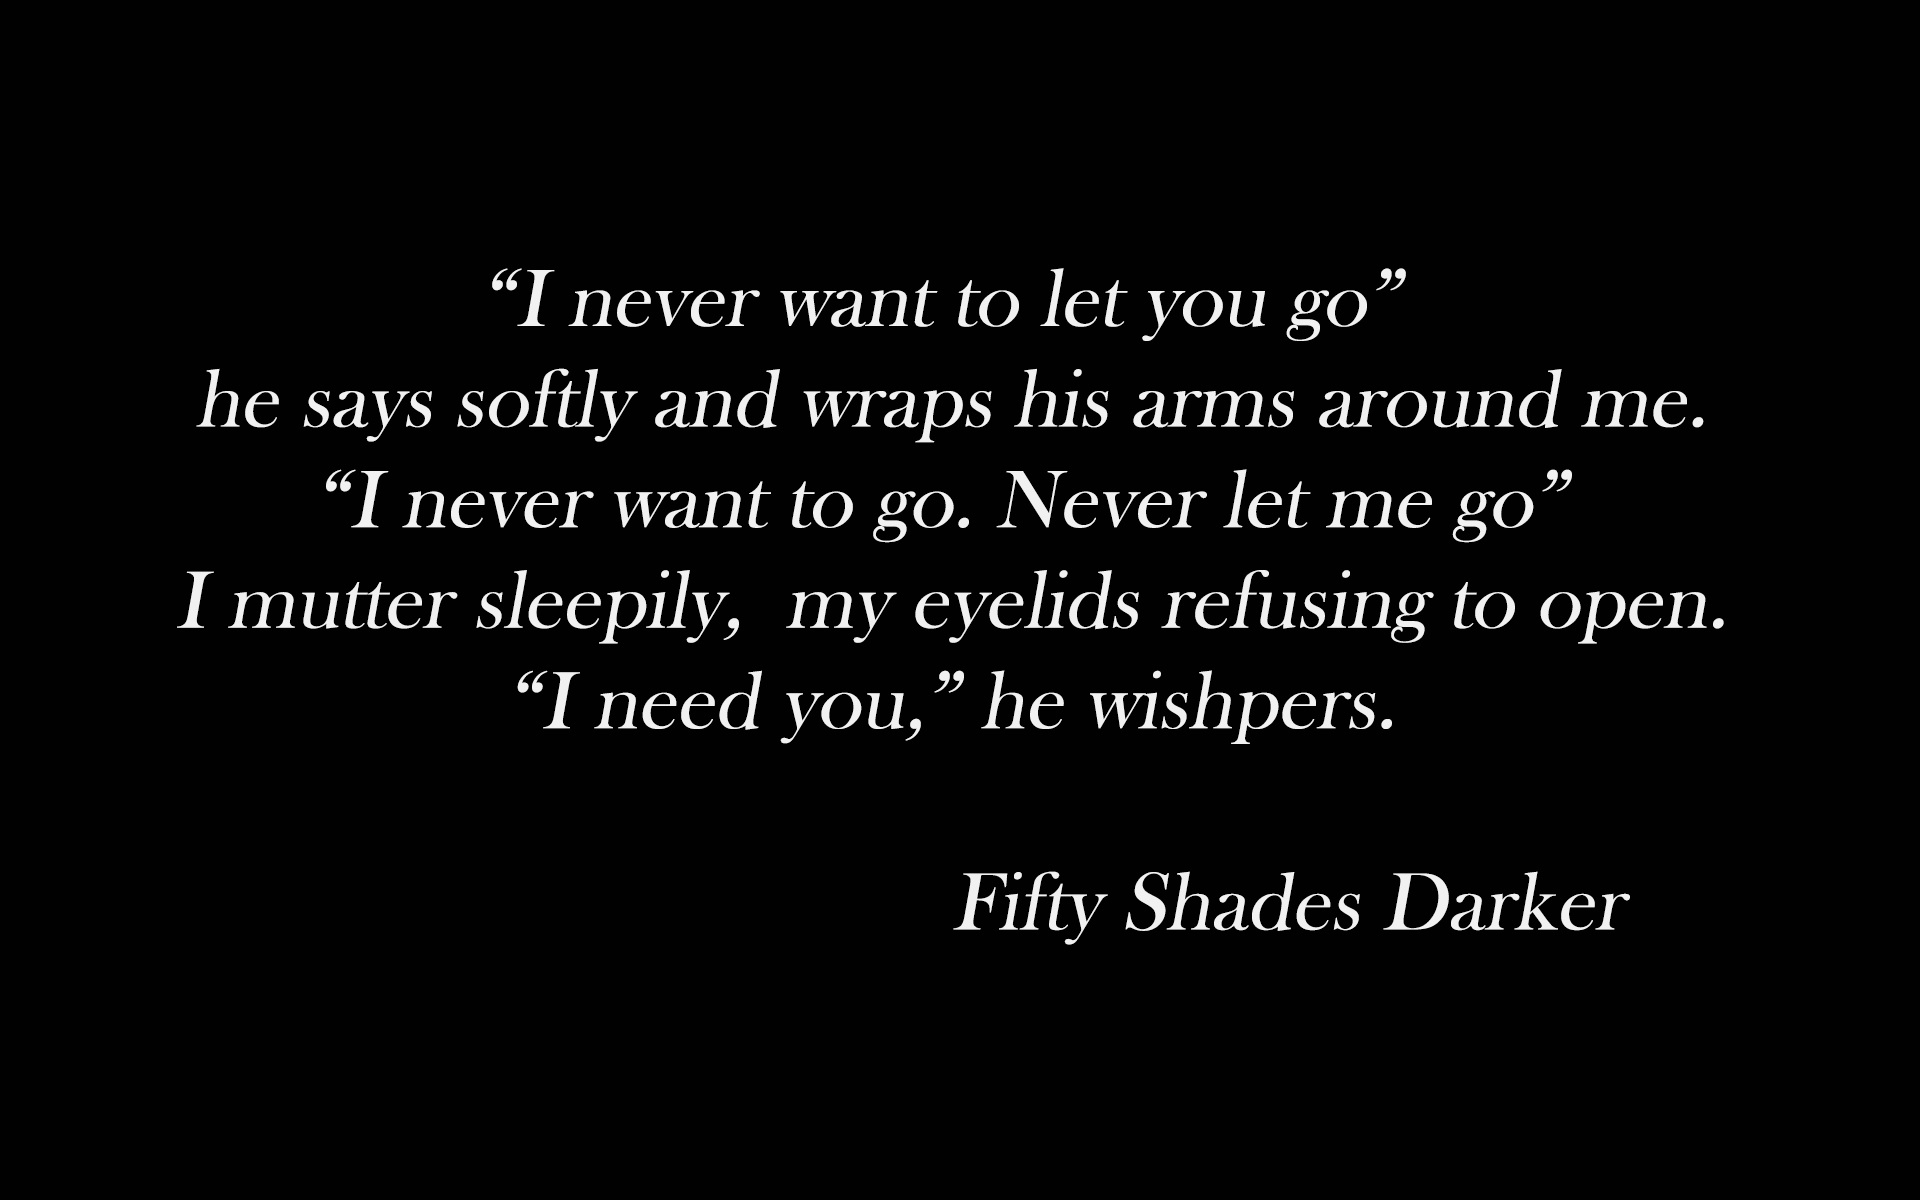 Quotes From 50 Shades Of Grey Quotes About Fifty Shades 62 Quotes